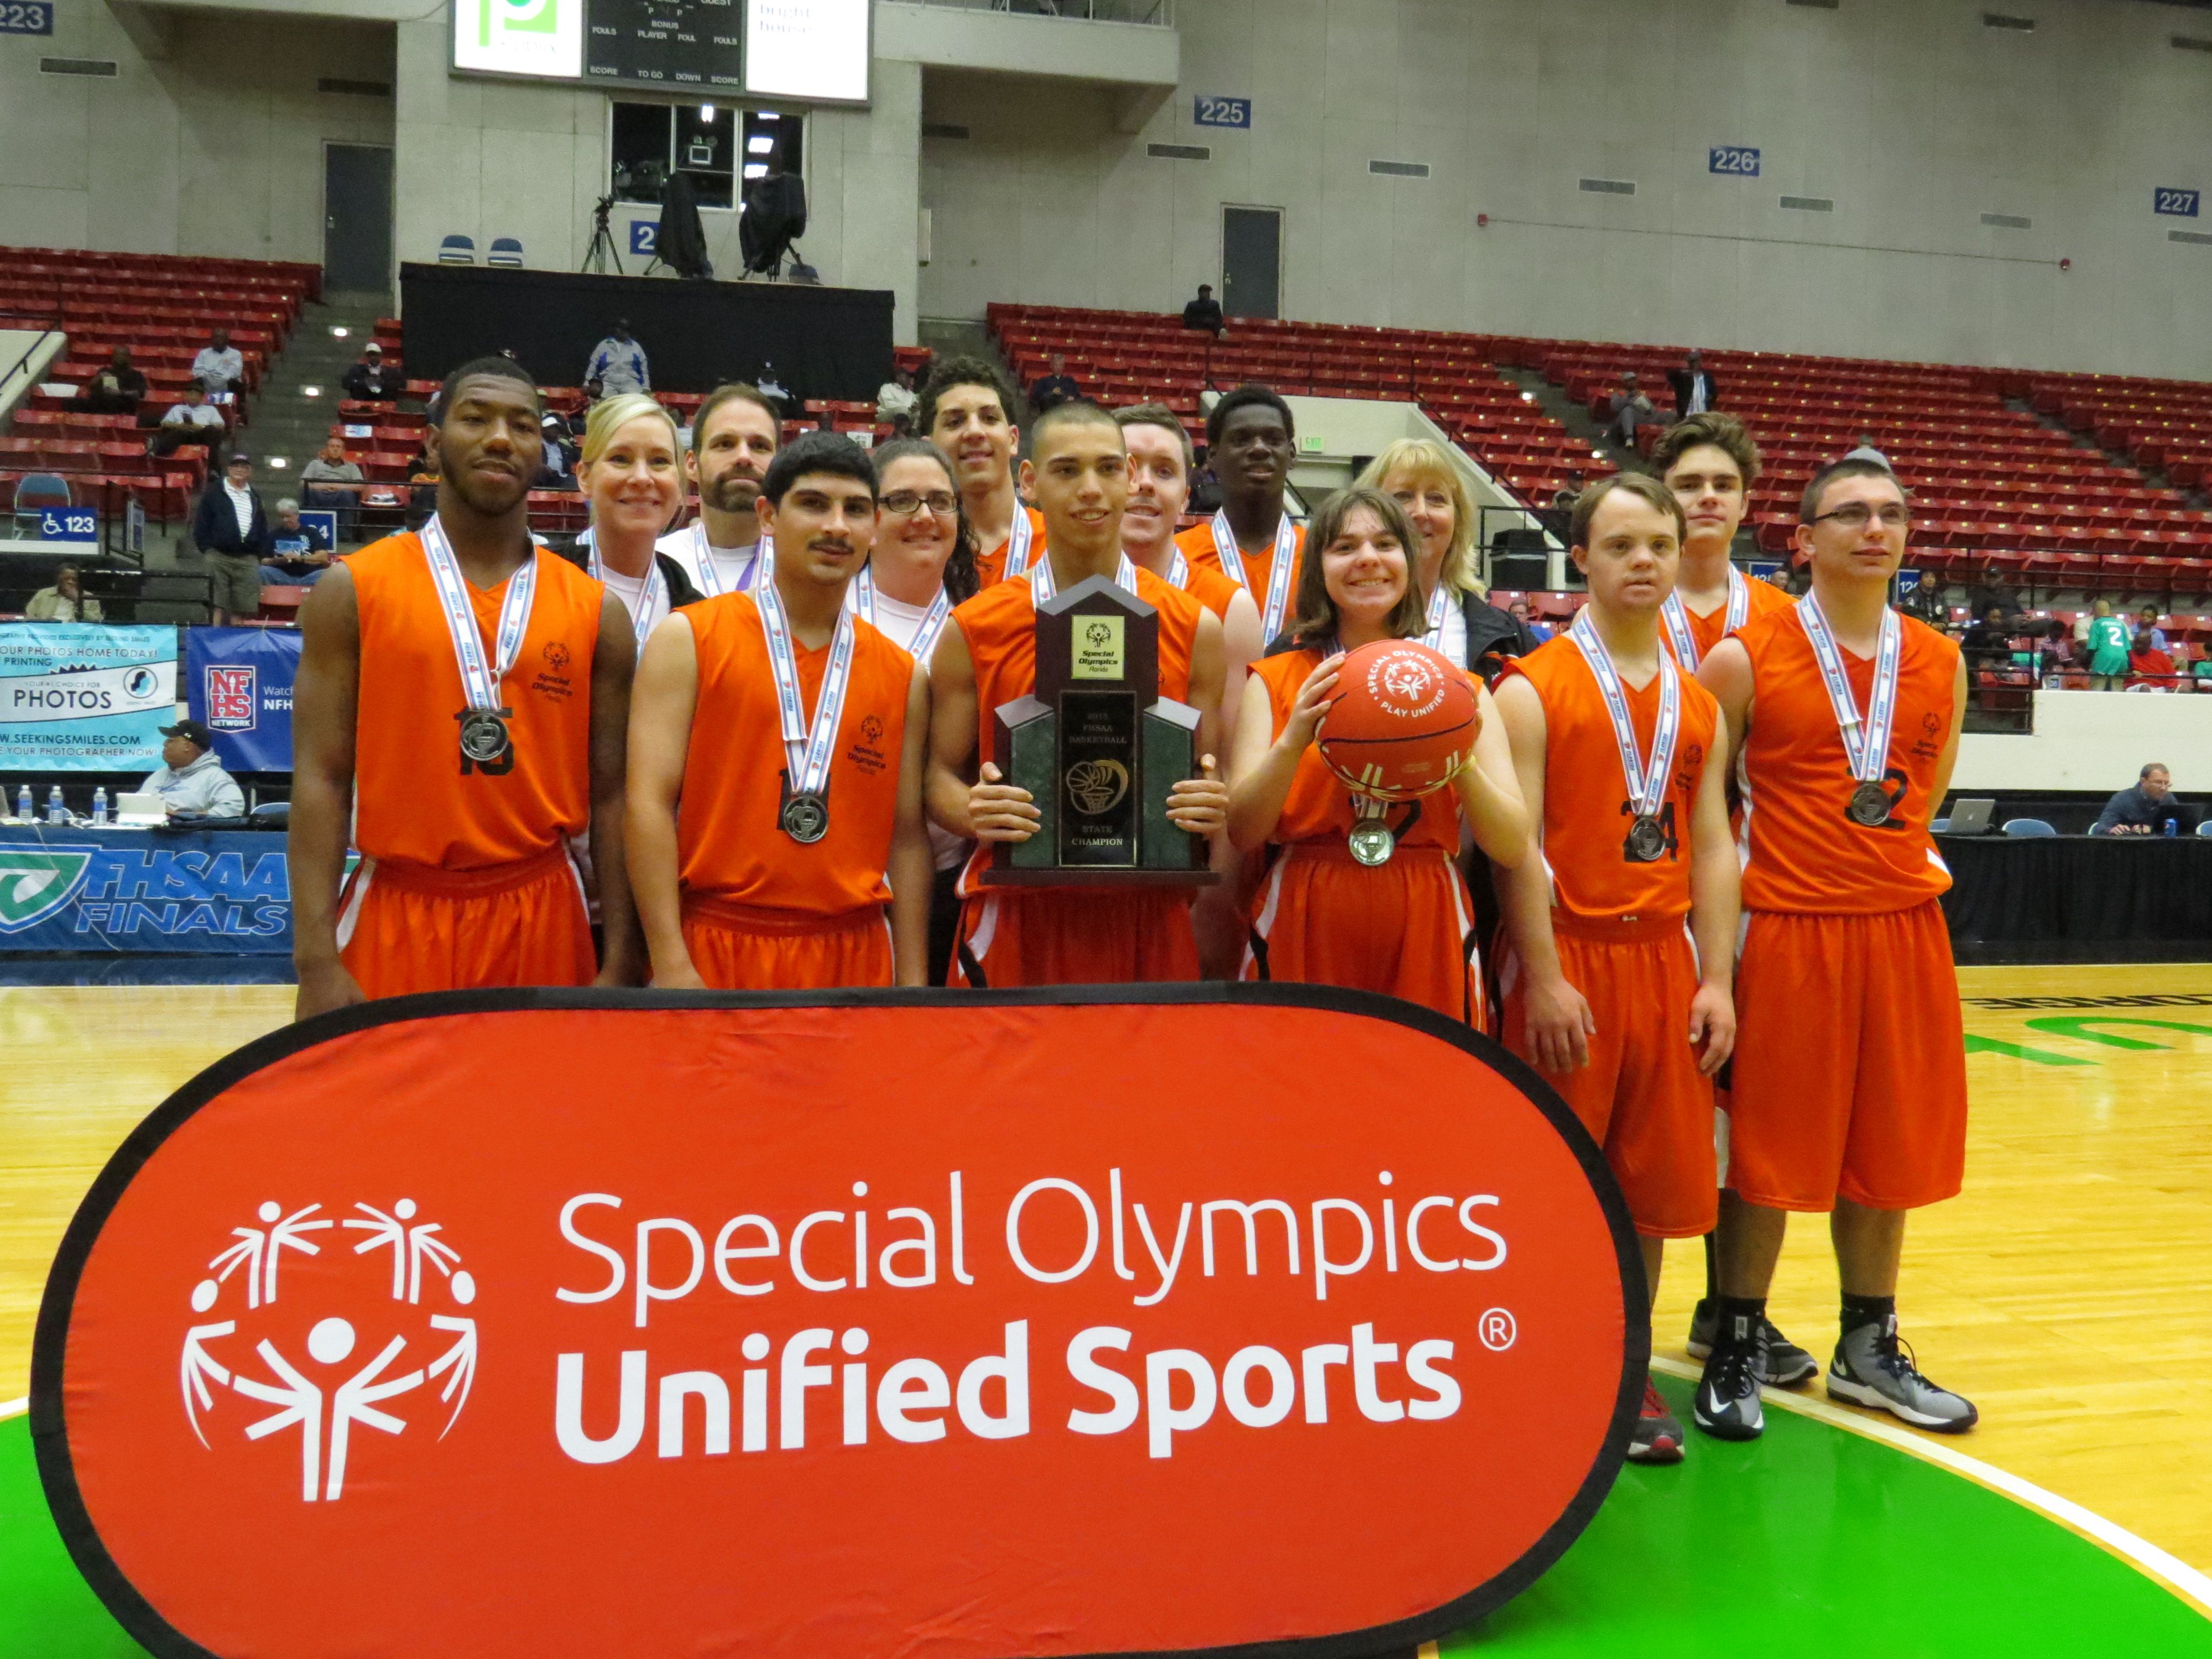 Special Olympics Unified Sports Teams Steal The Show At Fhsaa Basketball Finals Special Olympics Olympics Sports